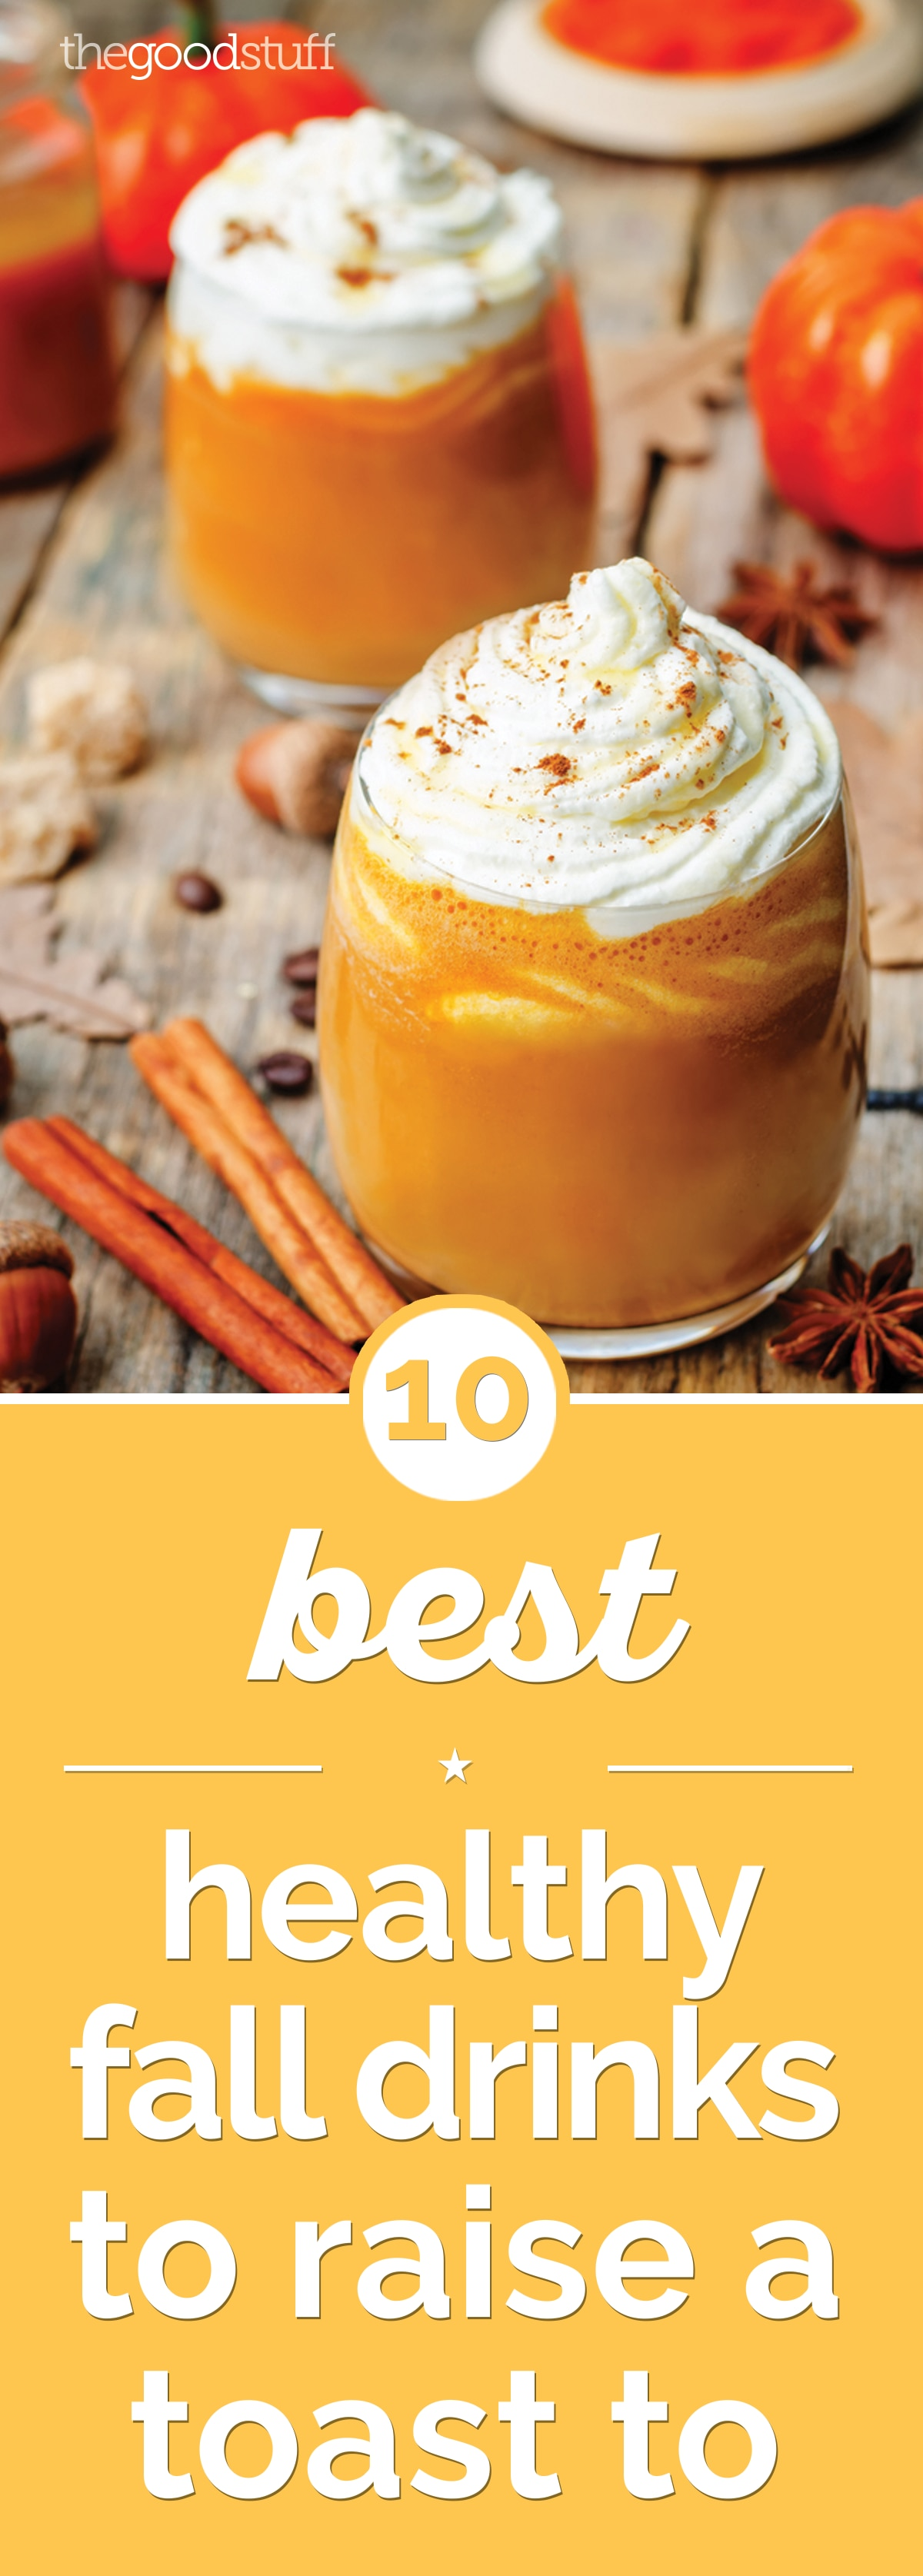 10 Best Healthy Fall Drinks to Raise a Toast To | thegoodstuff